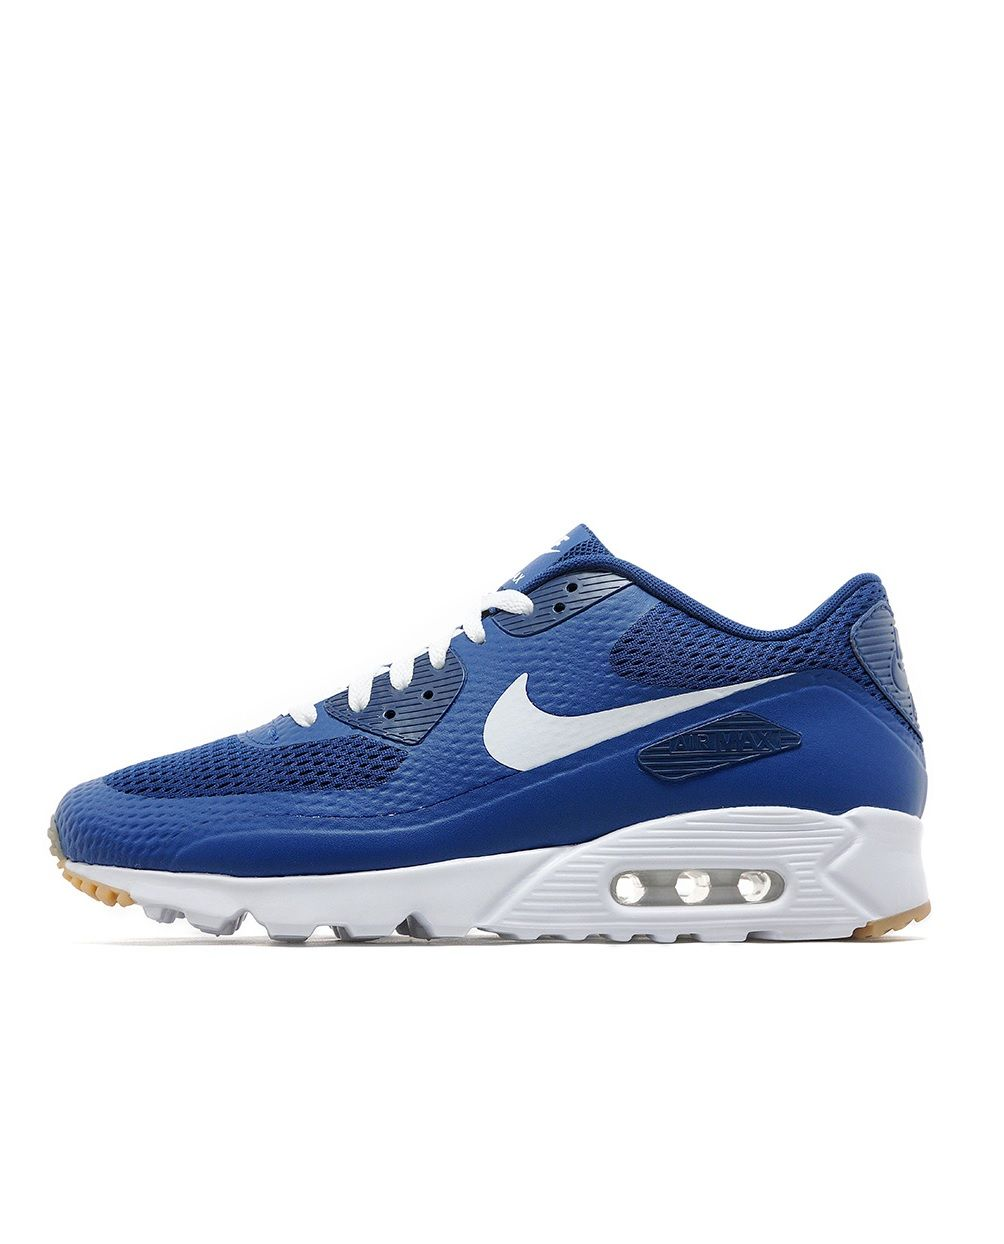 best service 8714f f15fe Nike Air Max 90 Ultra Essential: Blue (JD Sports Exclusive) | dope ...